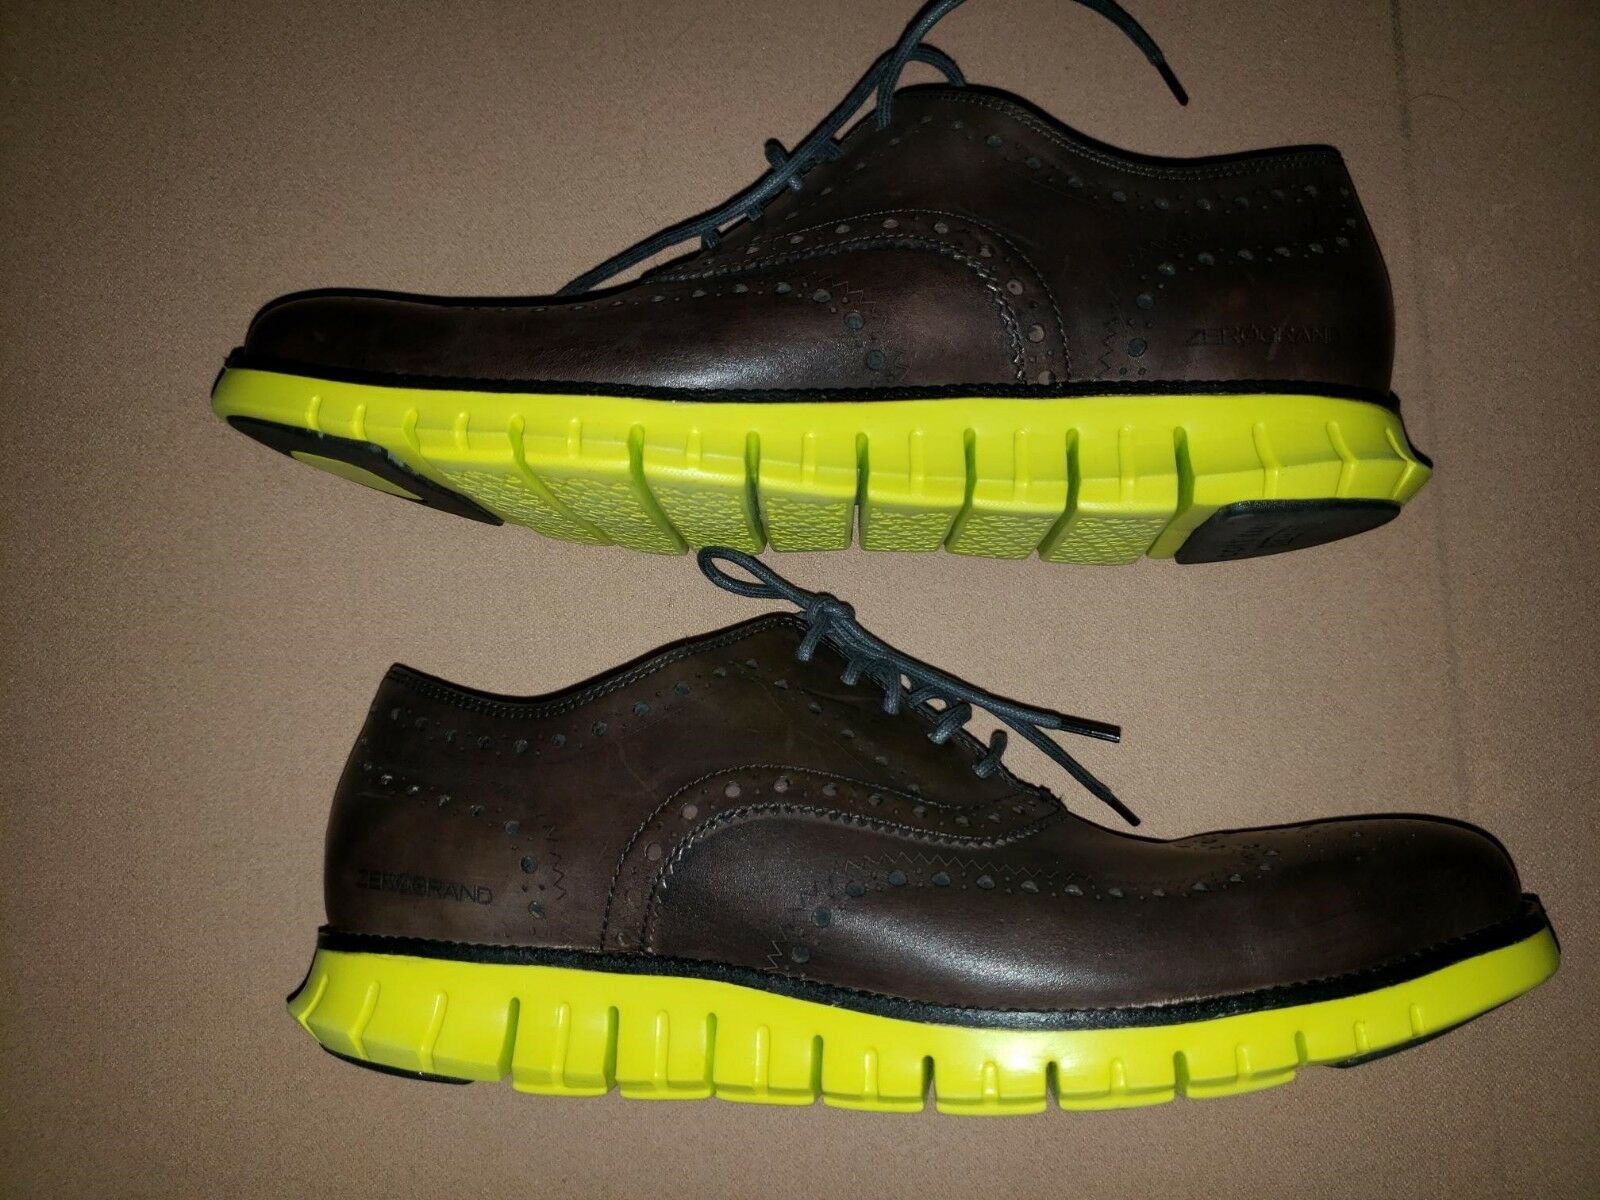 Cole Haan Zerogrand Wingtip Brogue Oxford chaussures Taille 11.5  MODEL C20061